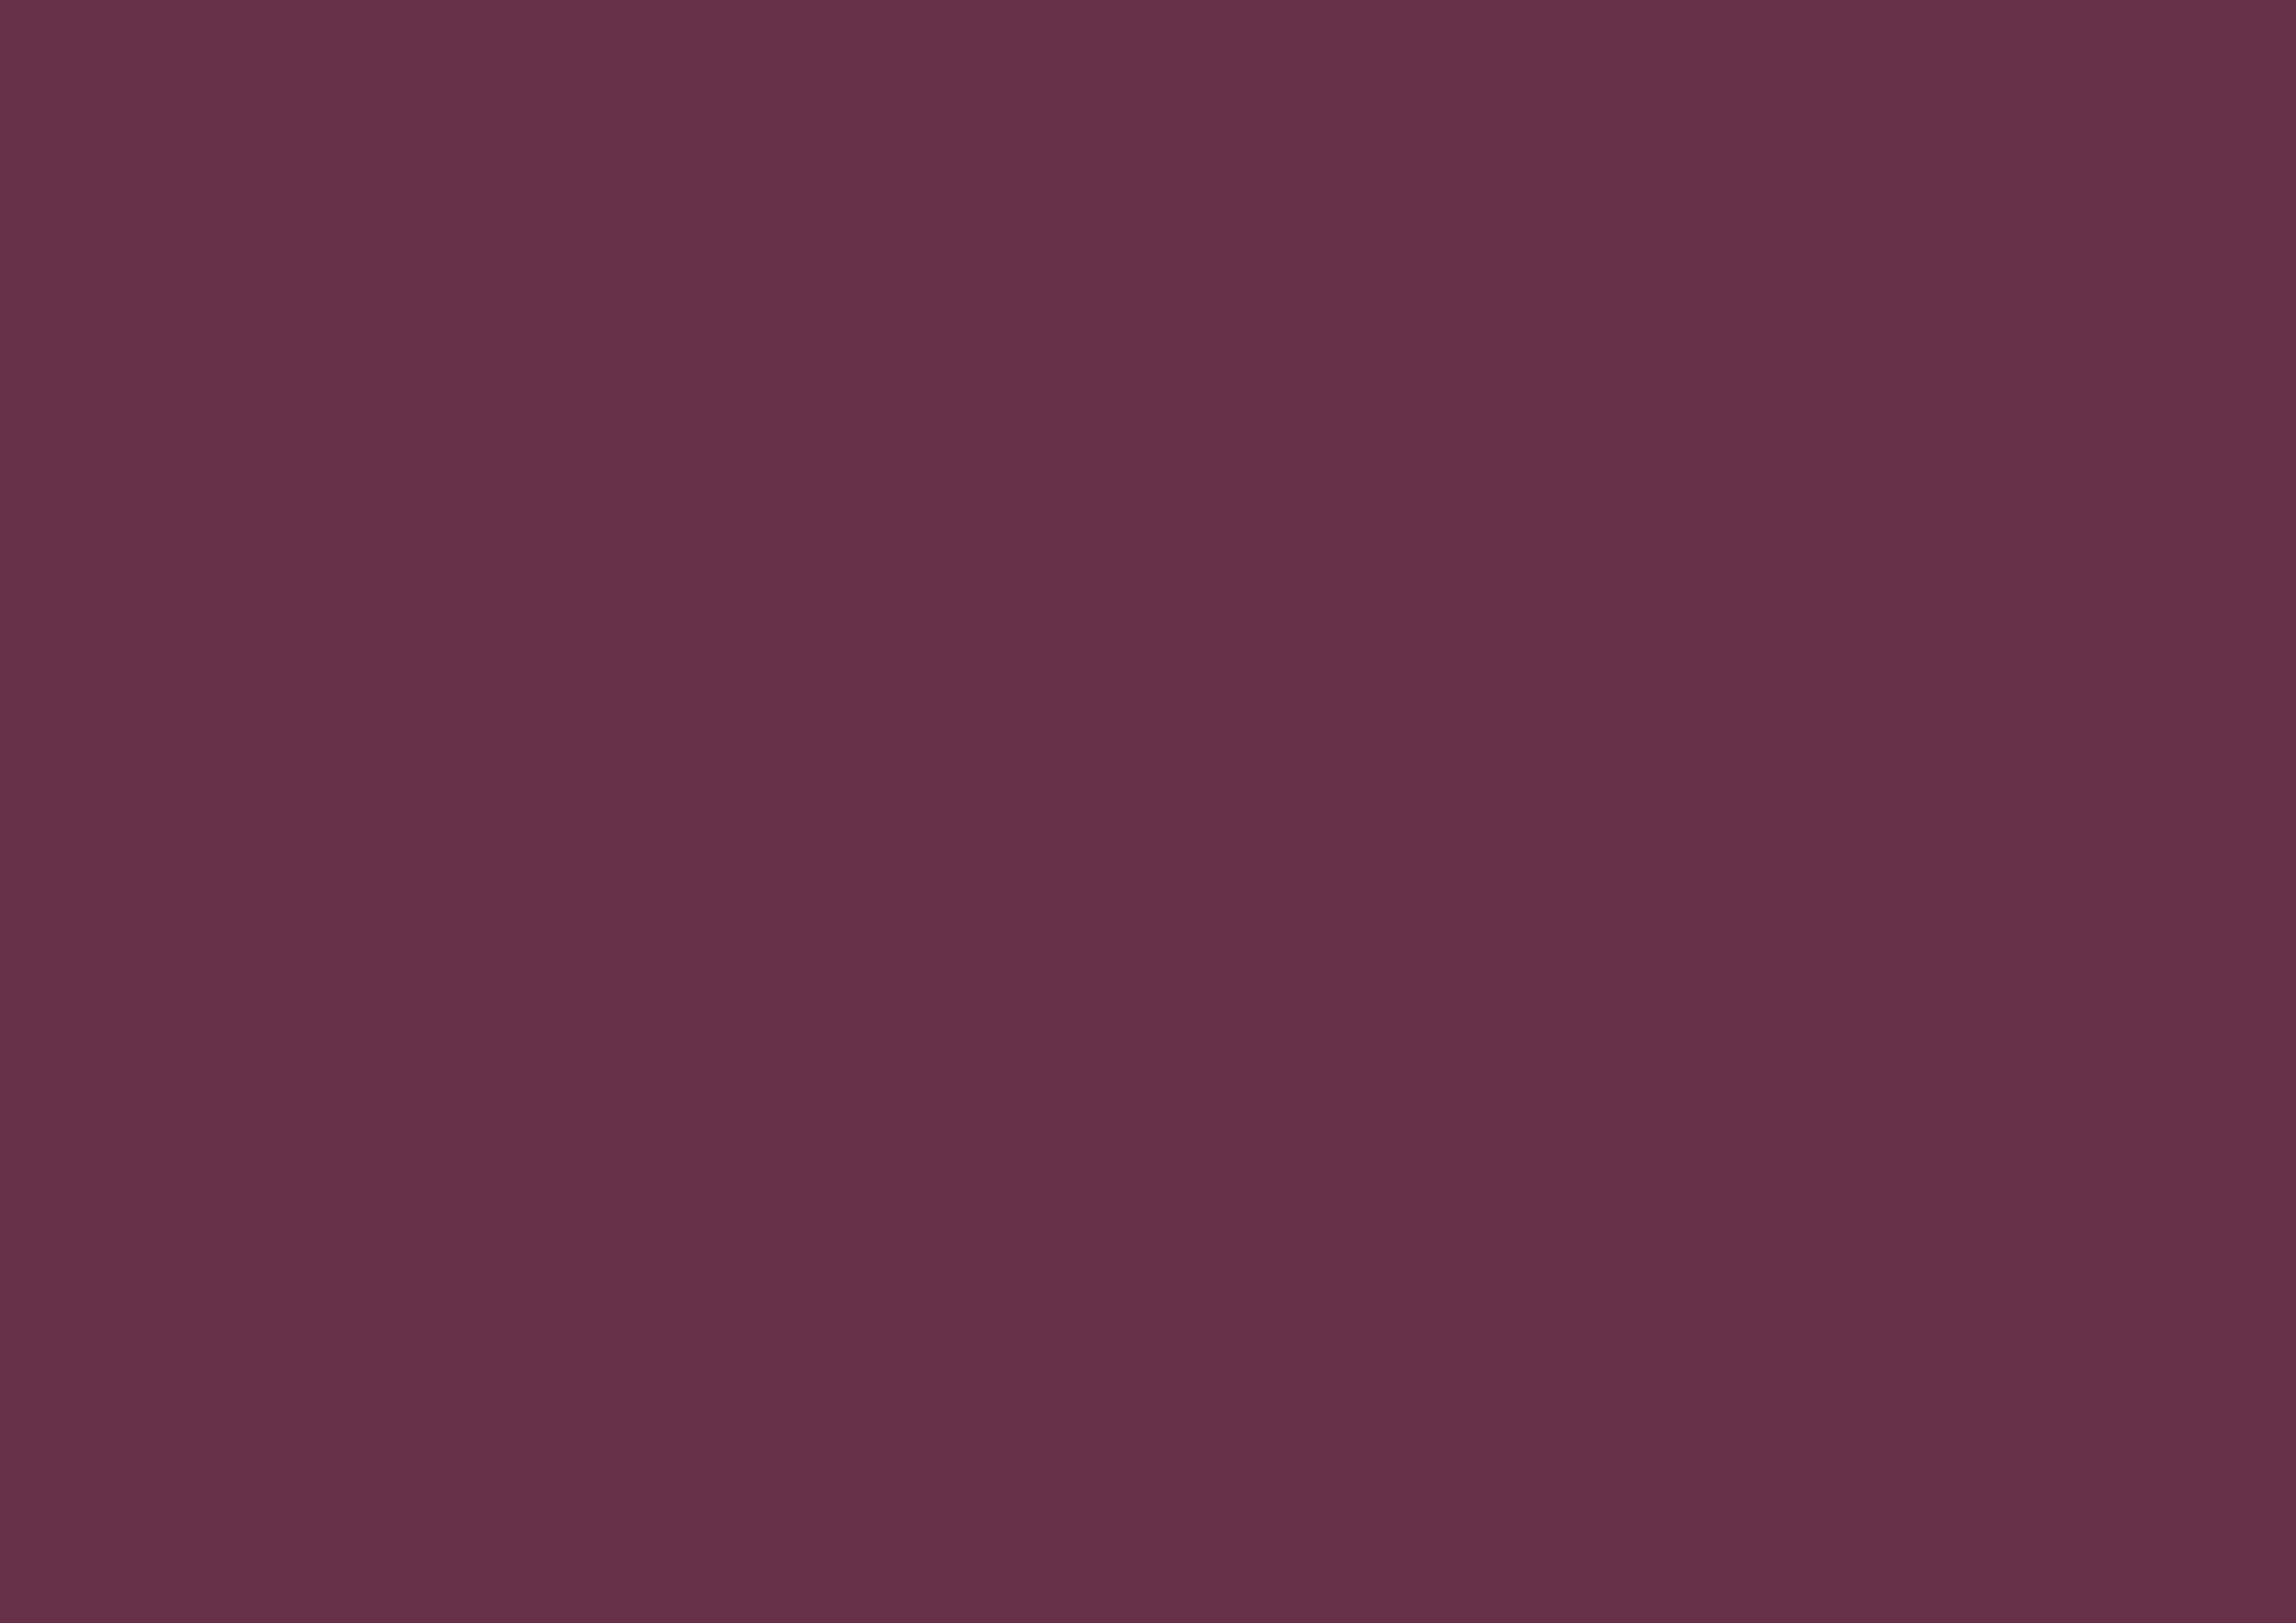 3508x2480 Wine Dregs Solid Color Background